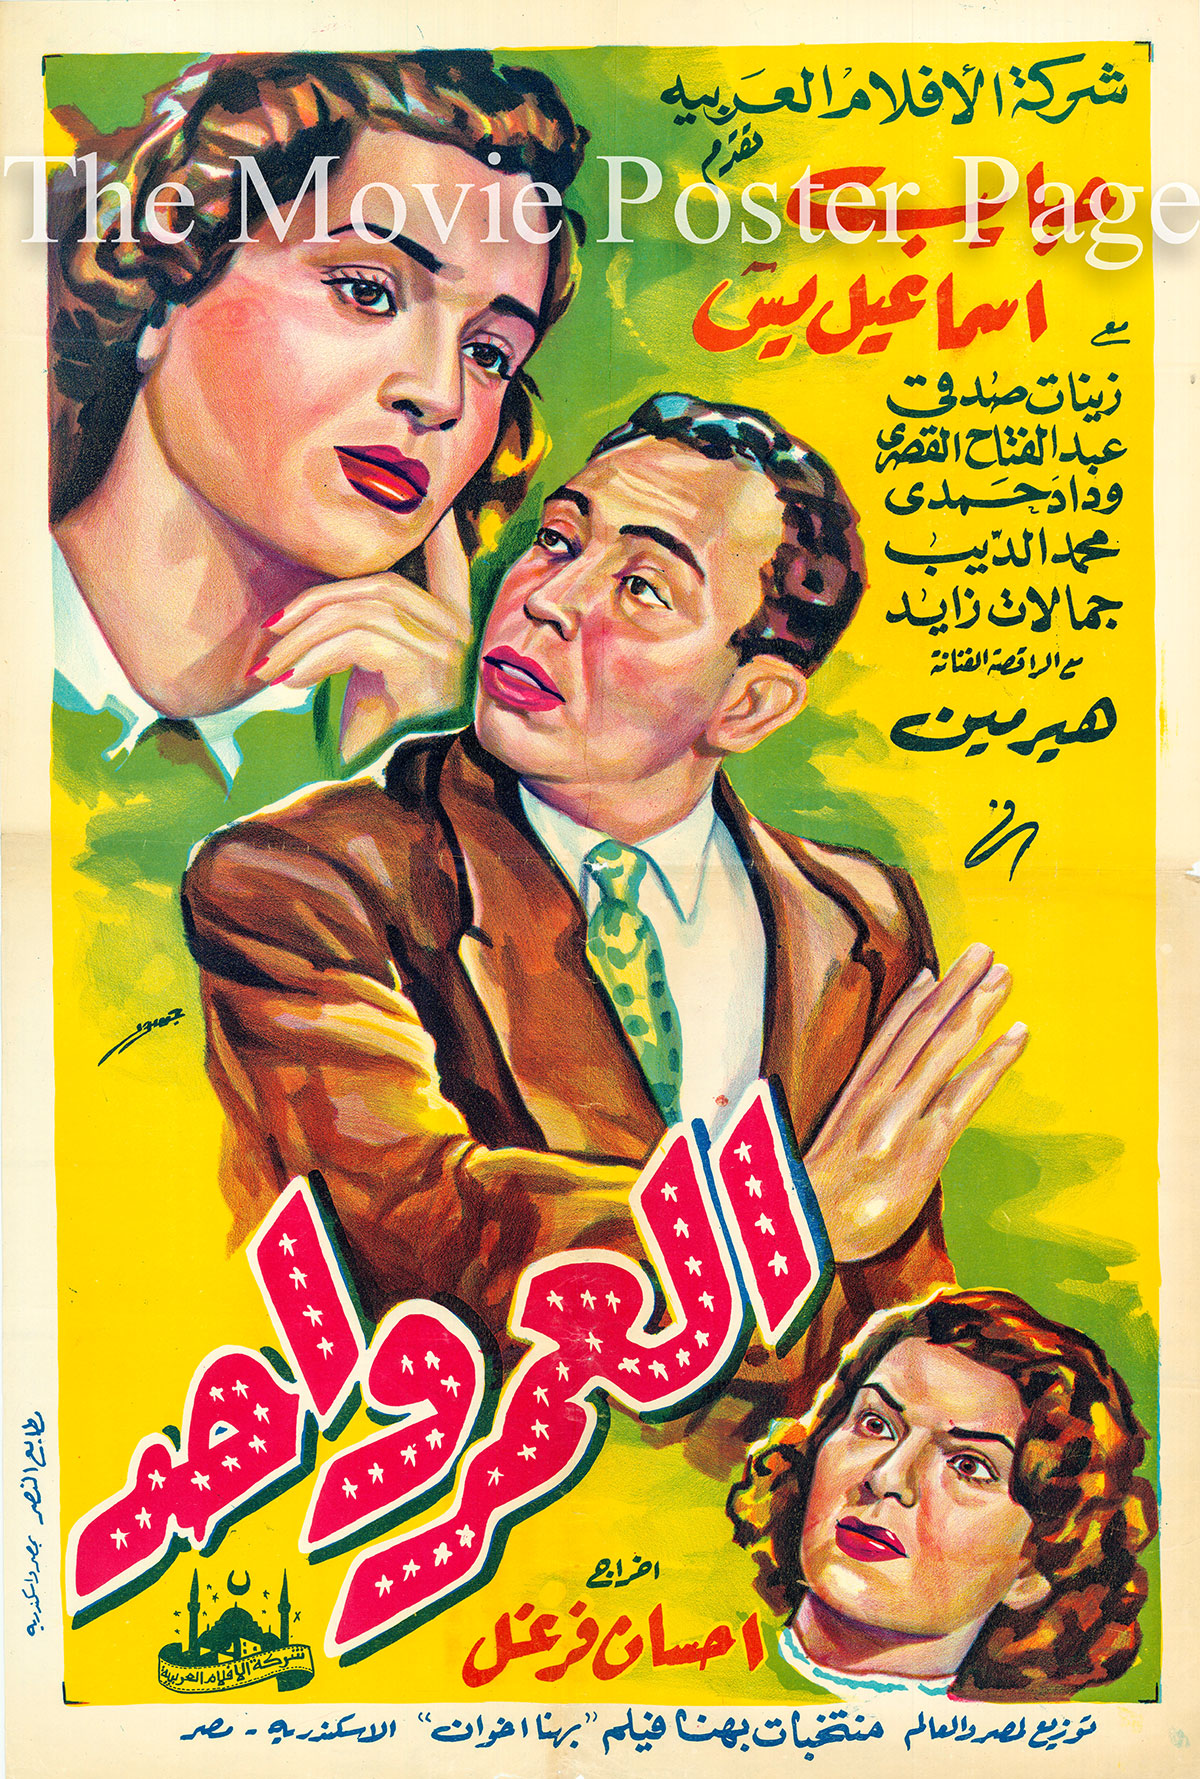 Pictured is an Egyptian promotional poster for the 1954 Ihsan Ferghal film We Live Once, starring Ismail Yasseen.